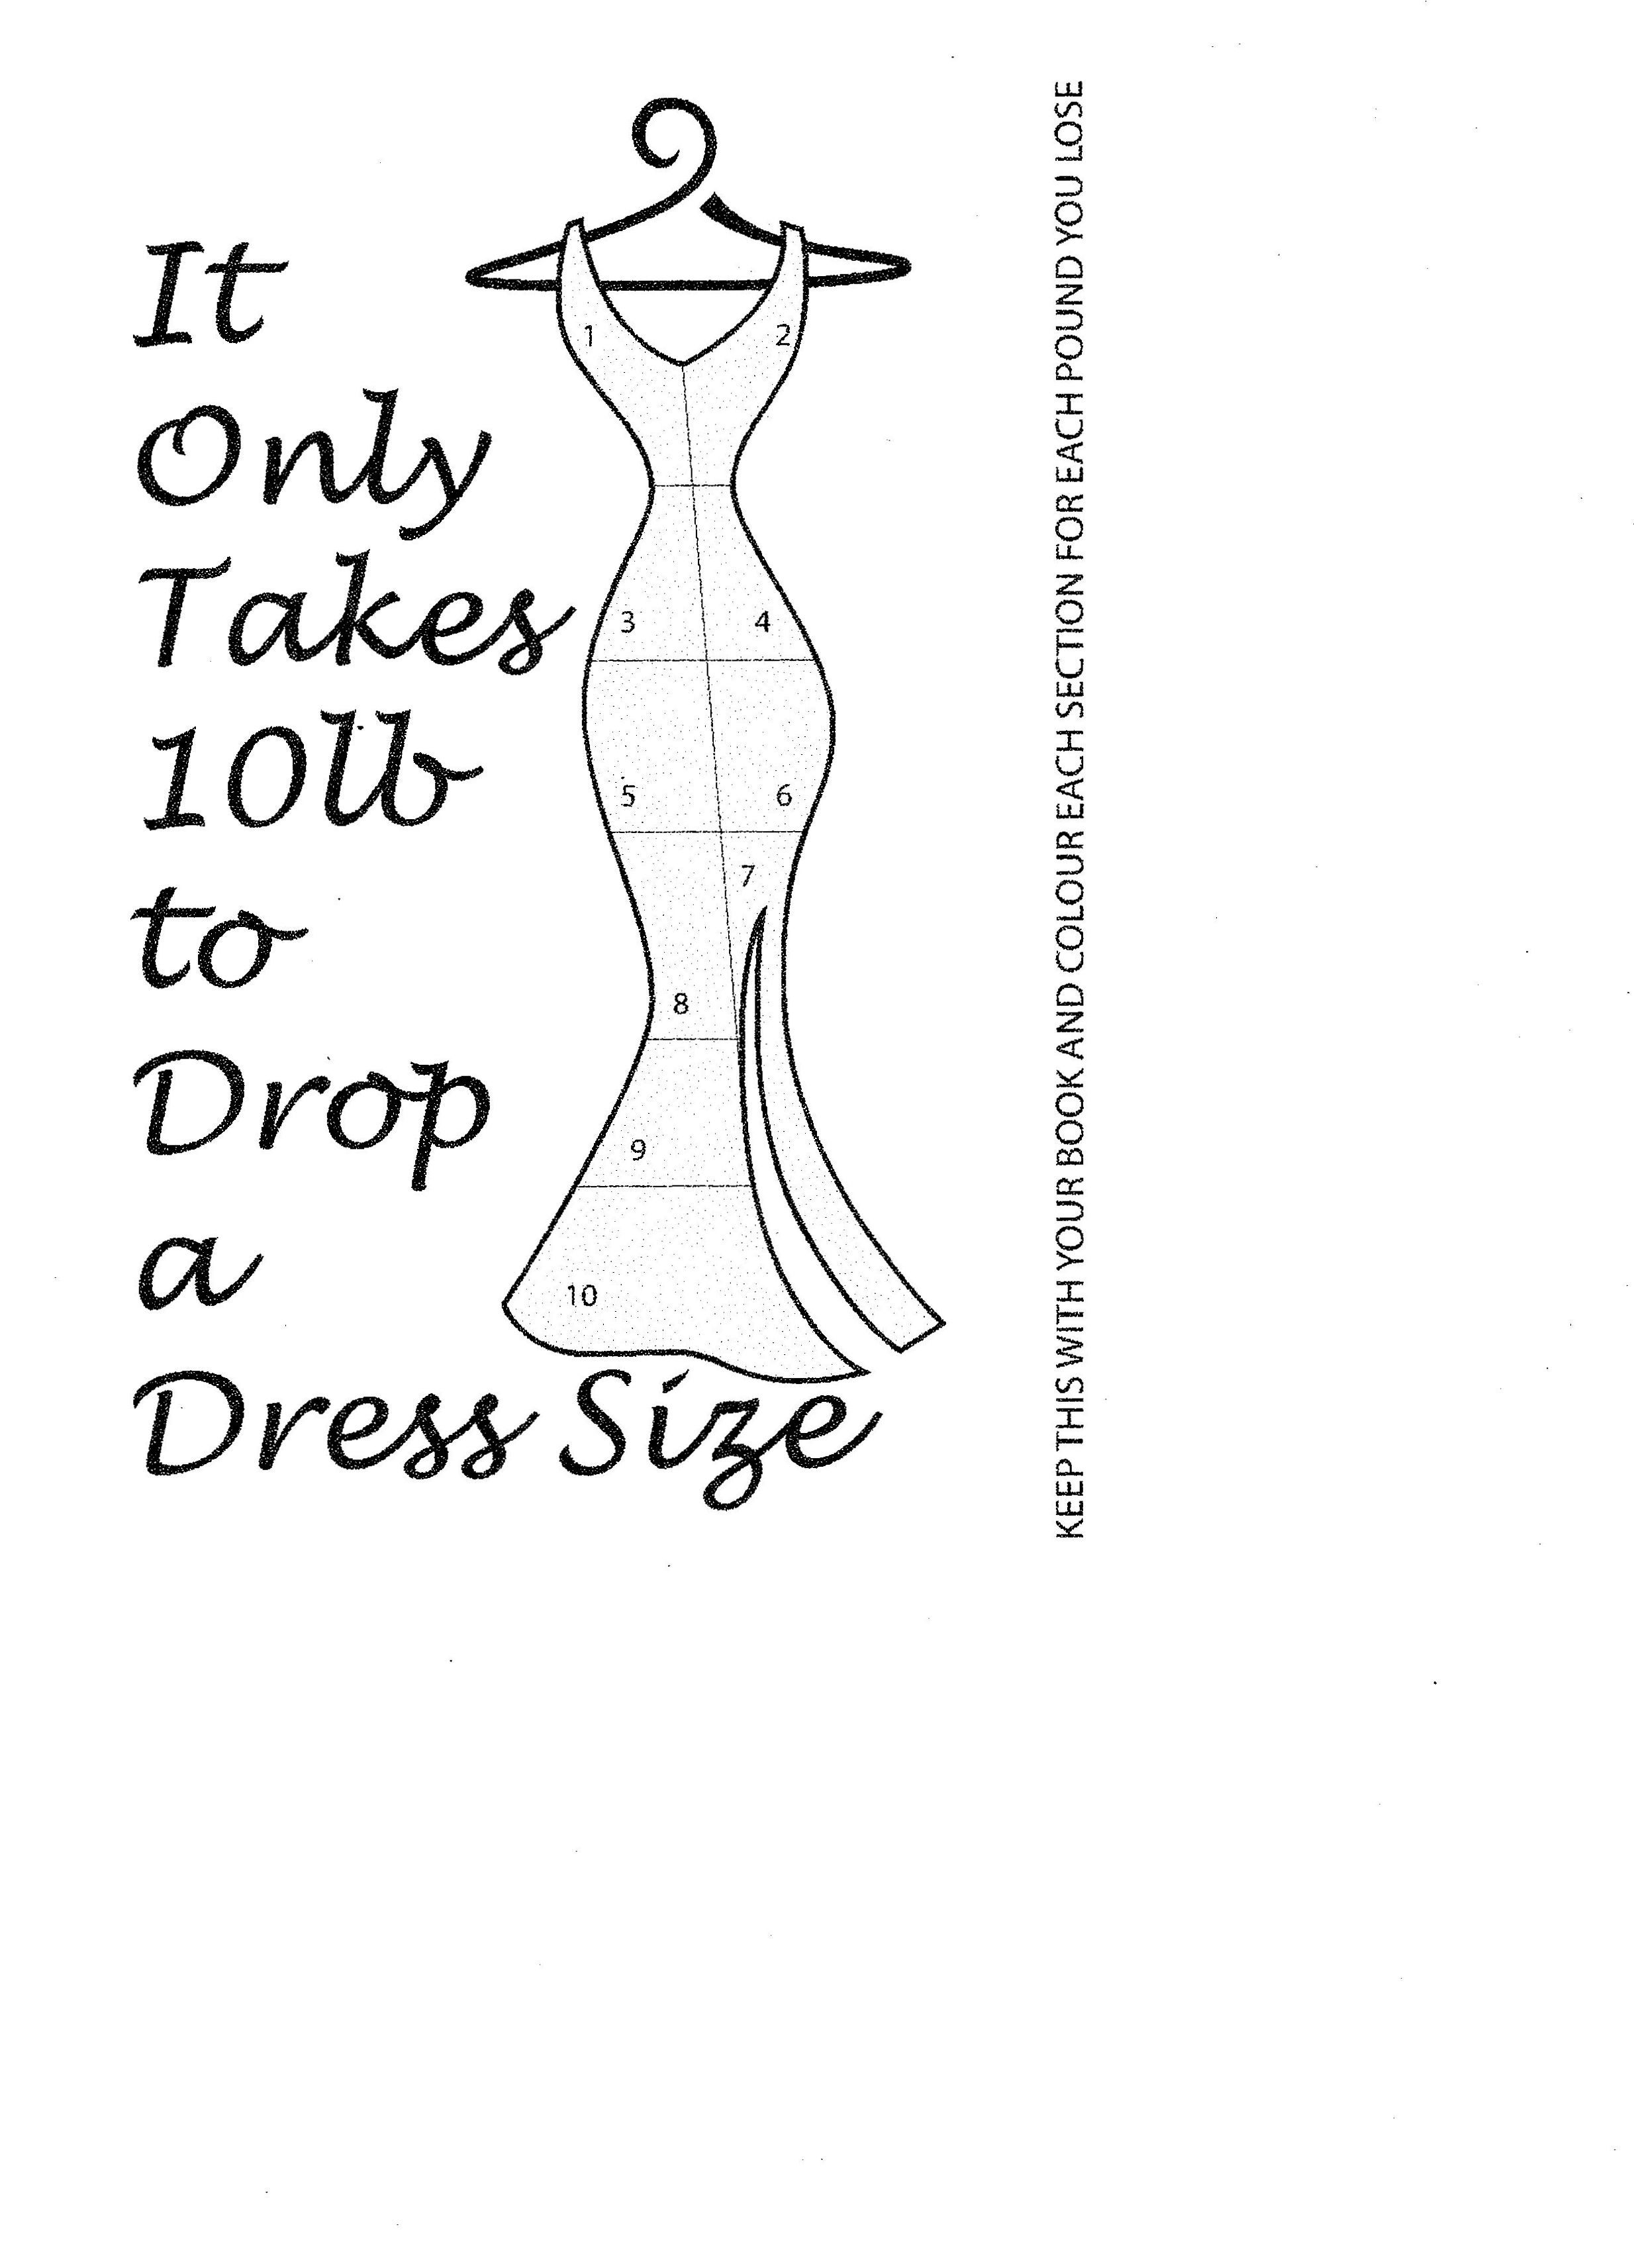 Lose 10 lbs and drop a dress size  Colour in each section for every